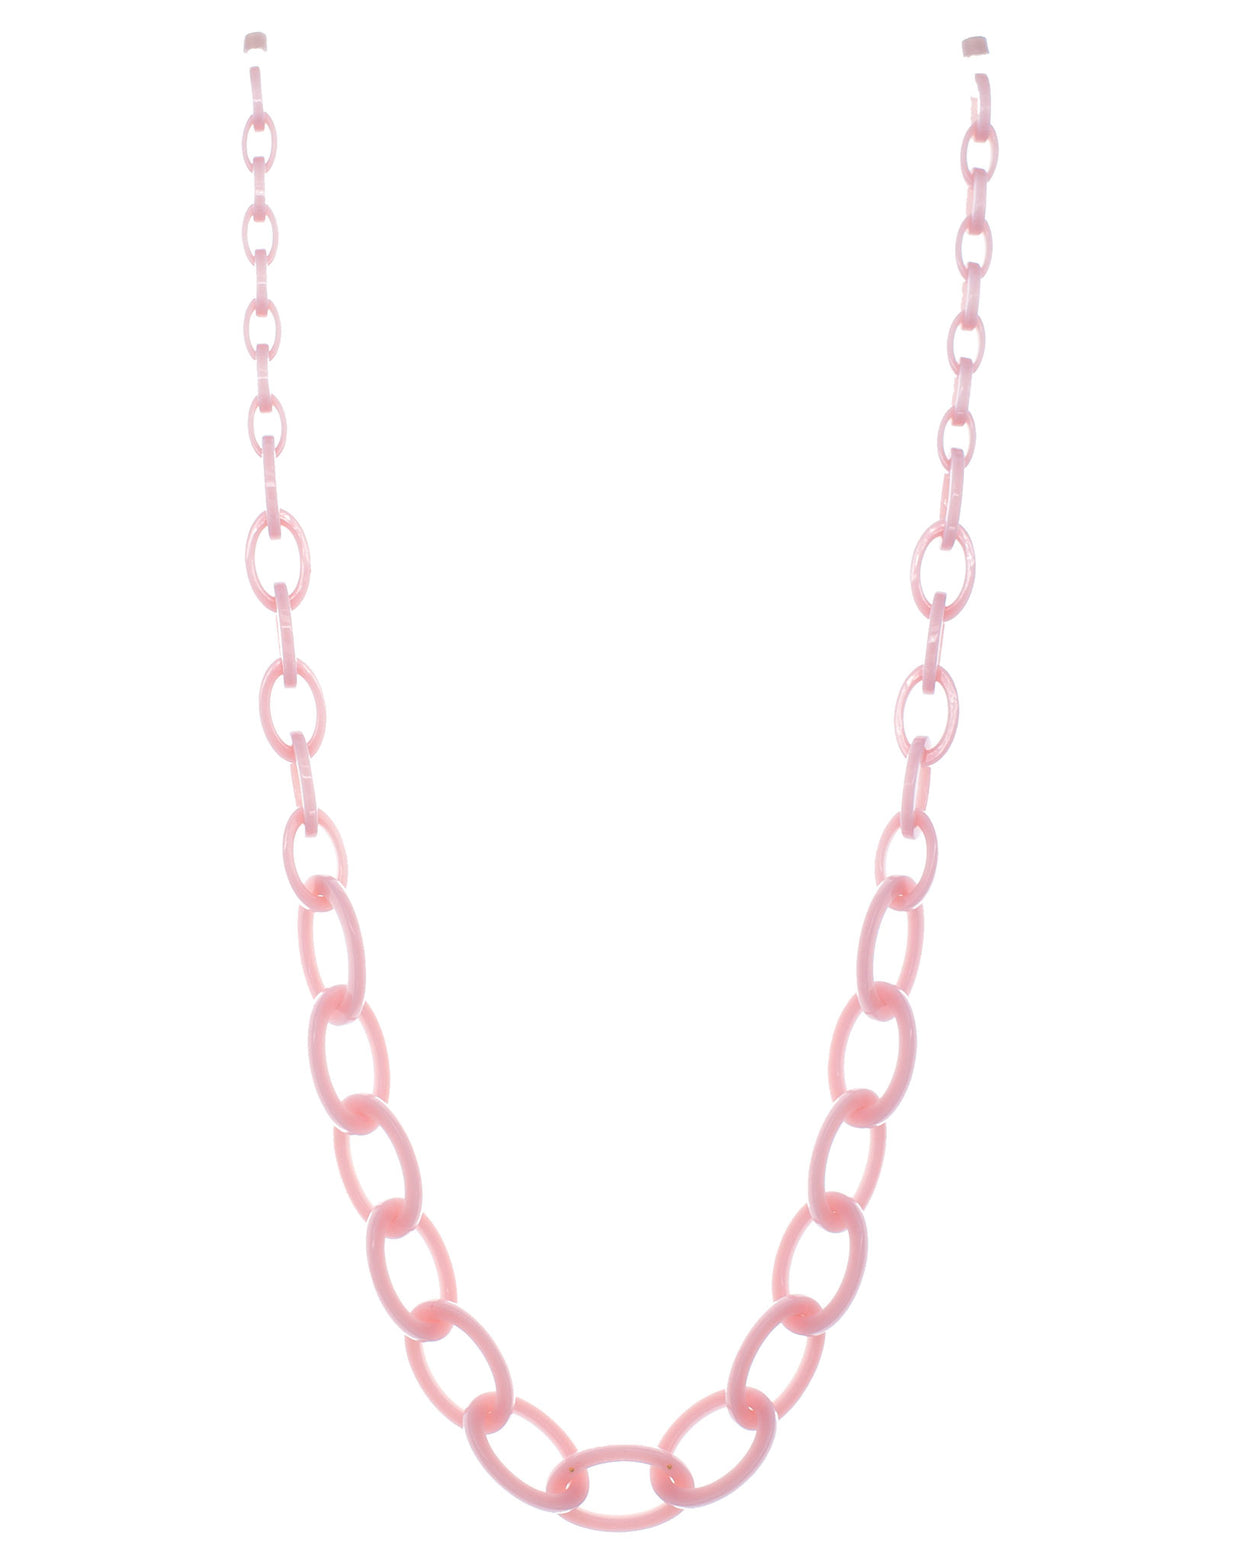 Smiley Chain | Bubble Gum Pink | Glasses Chain